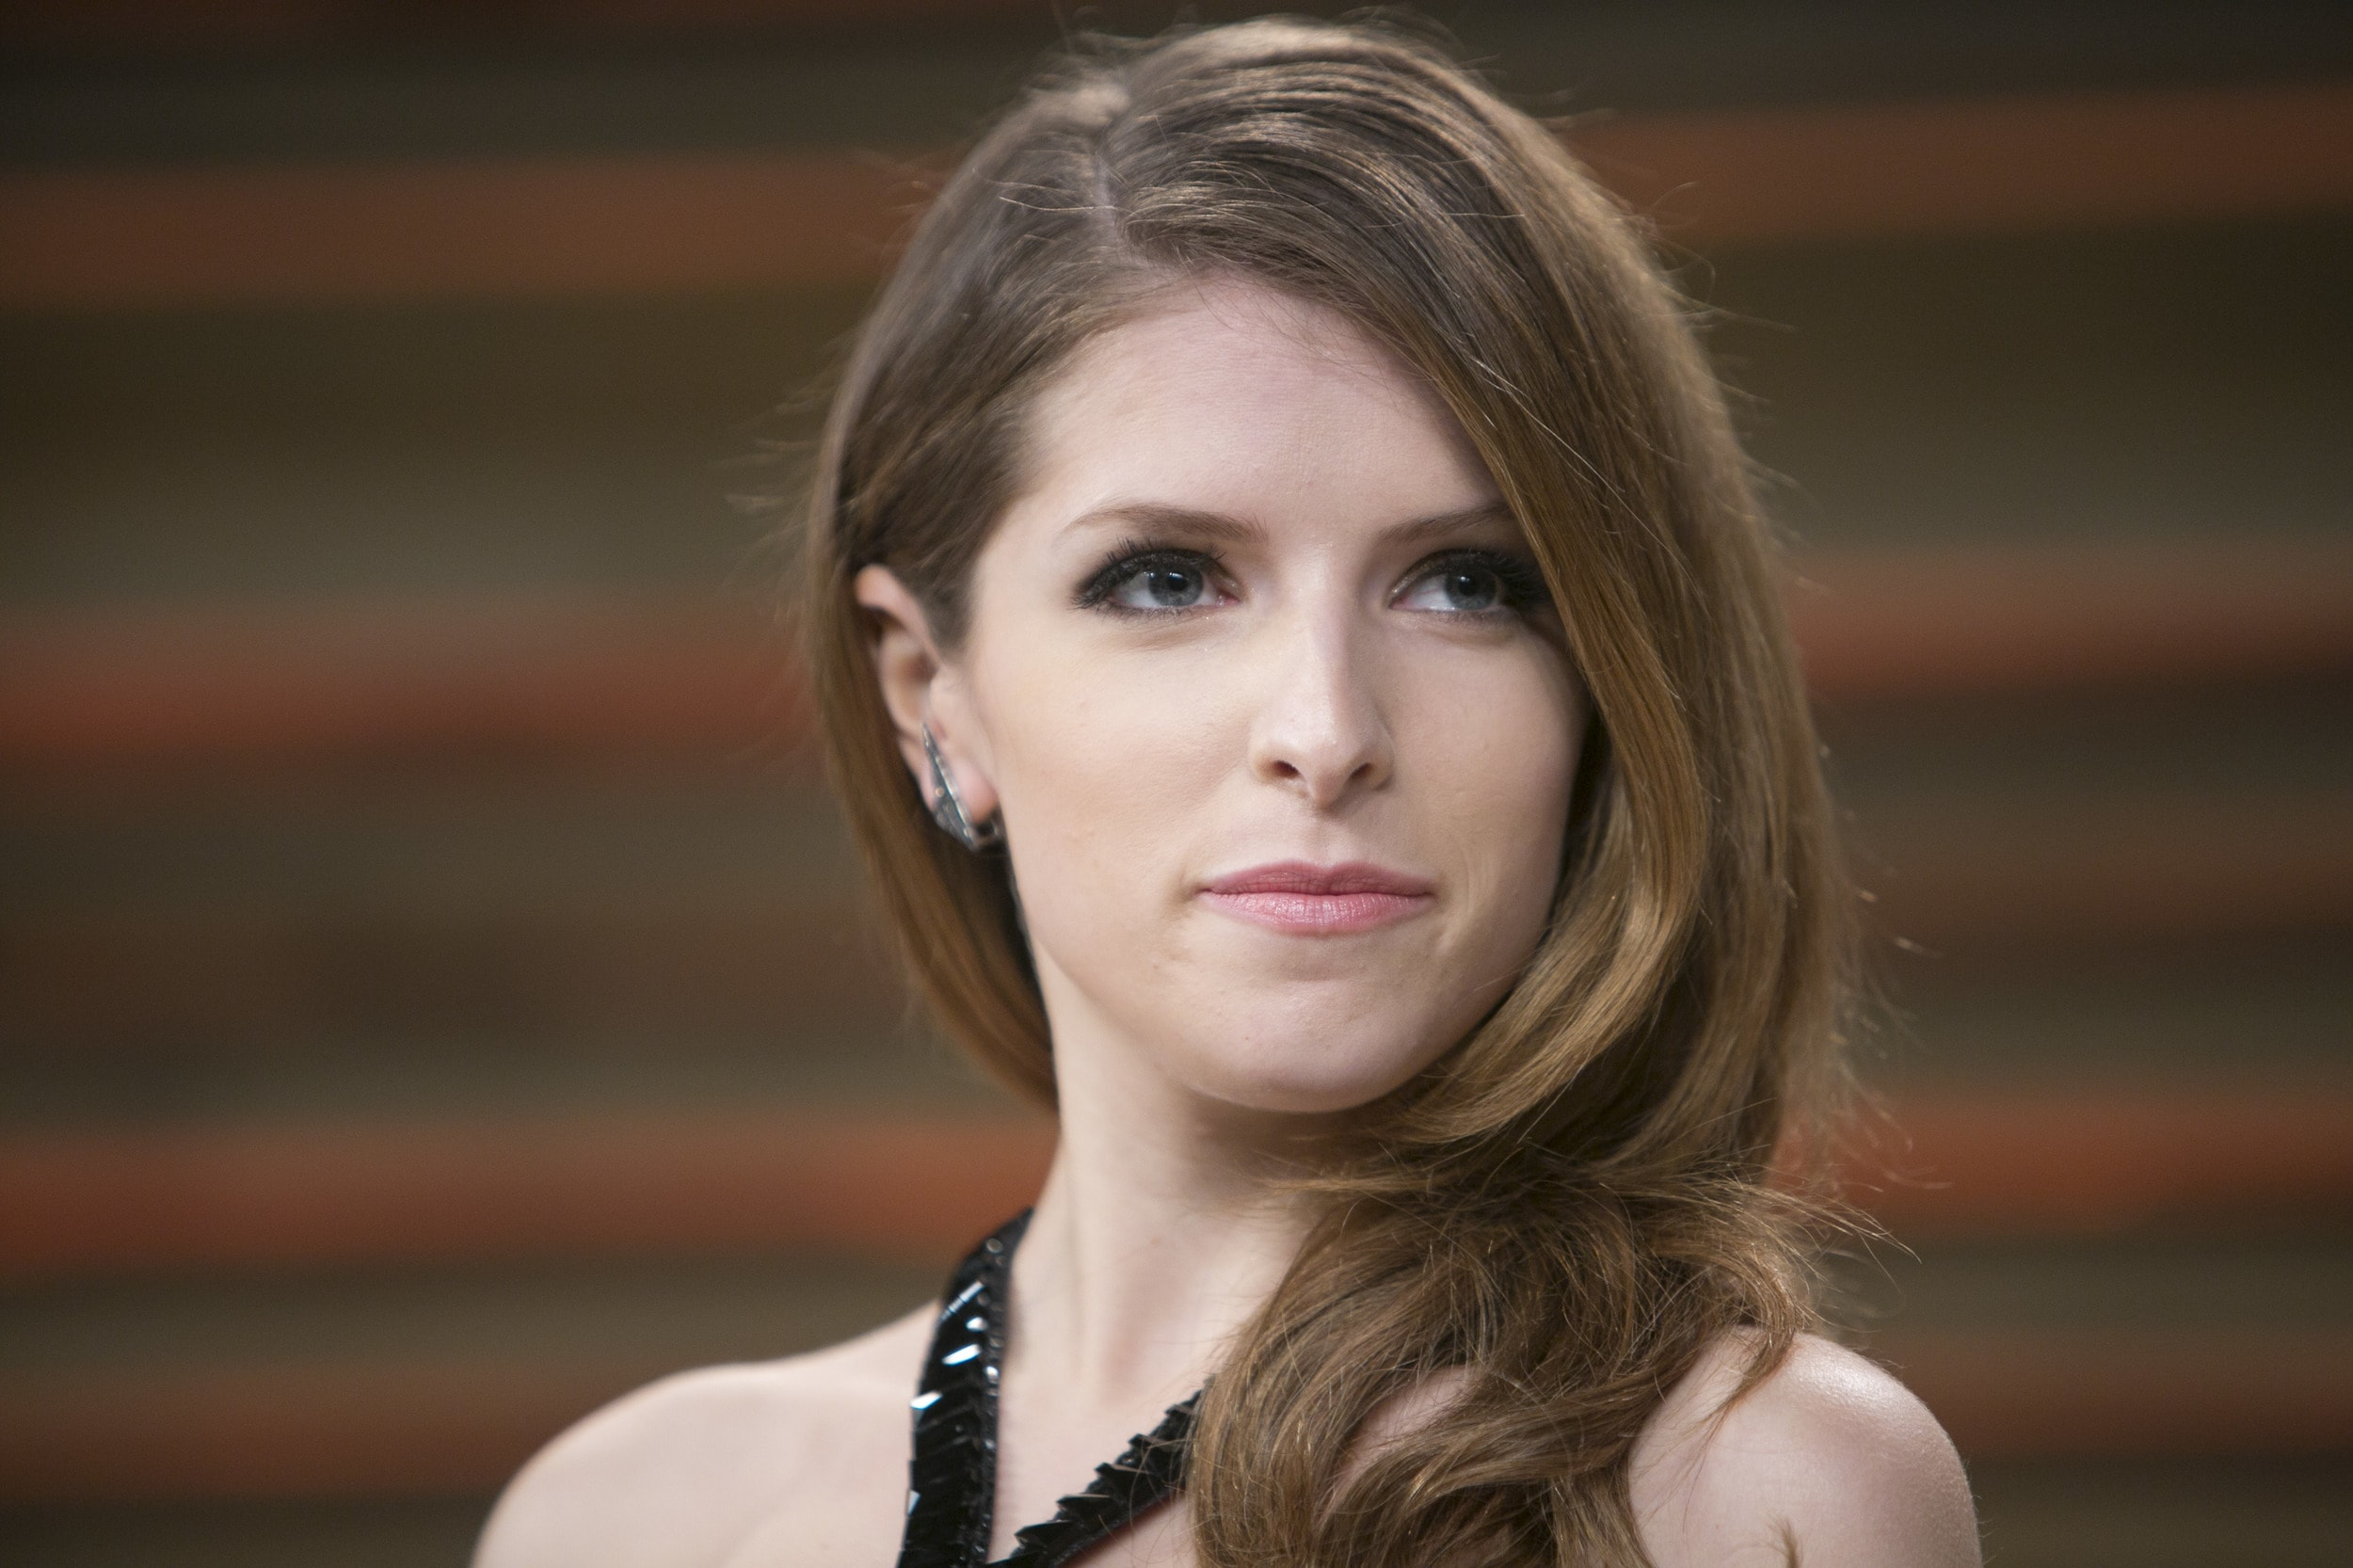 Anna Kendrick Wallpapers hd